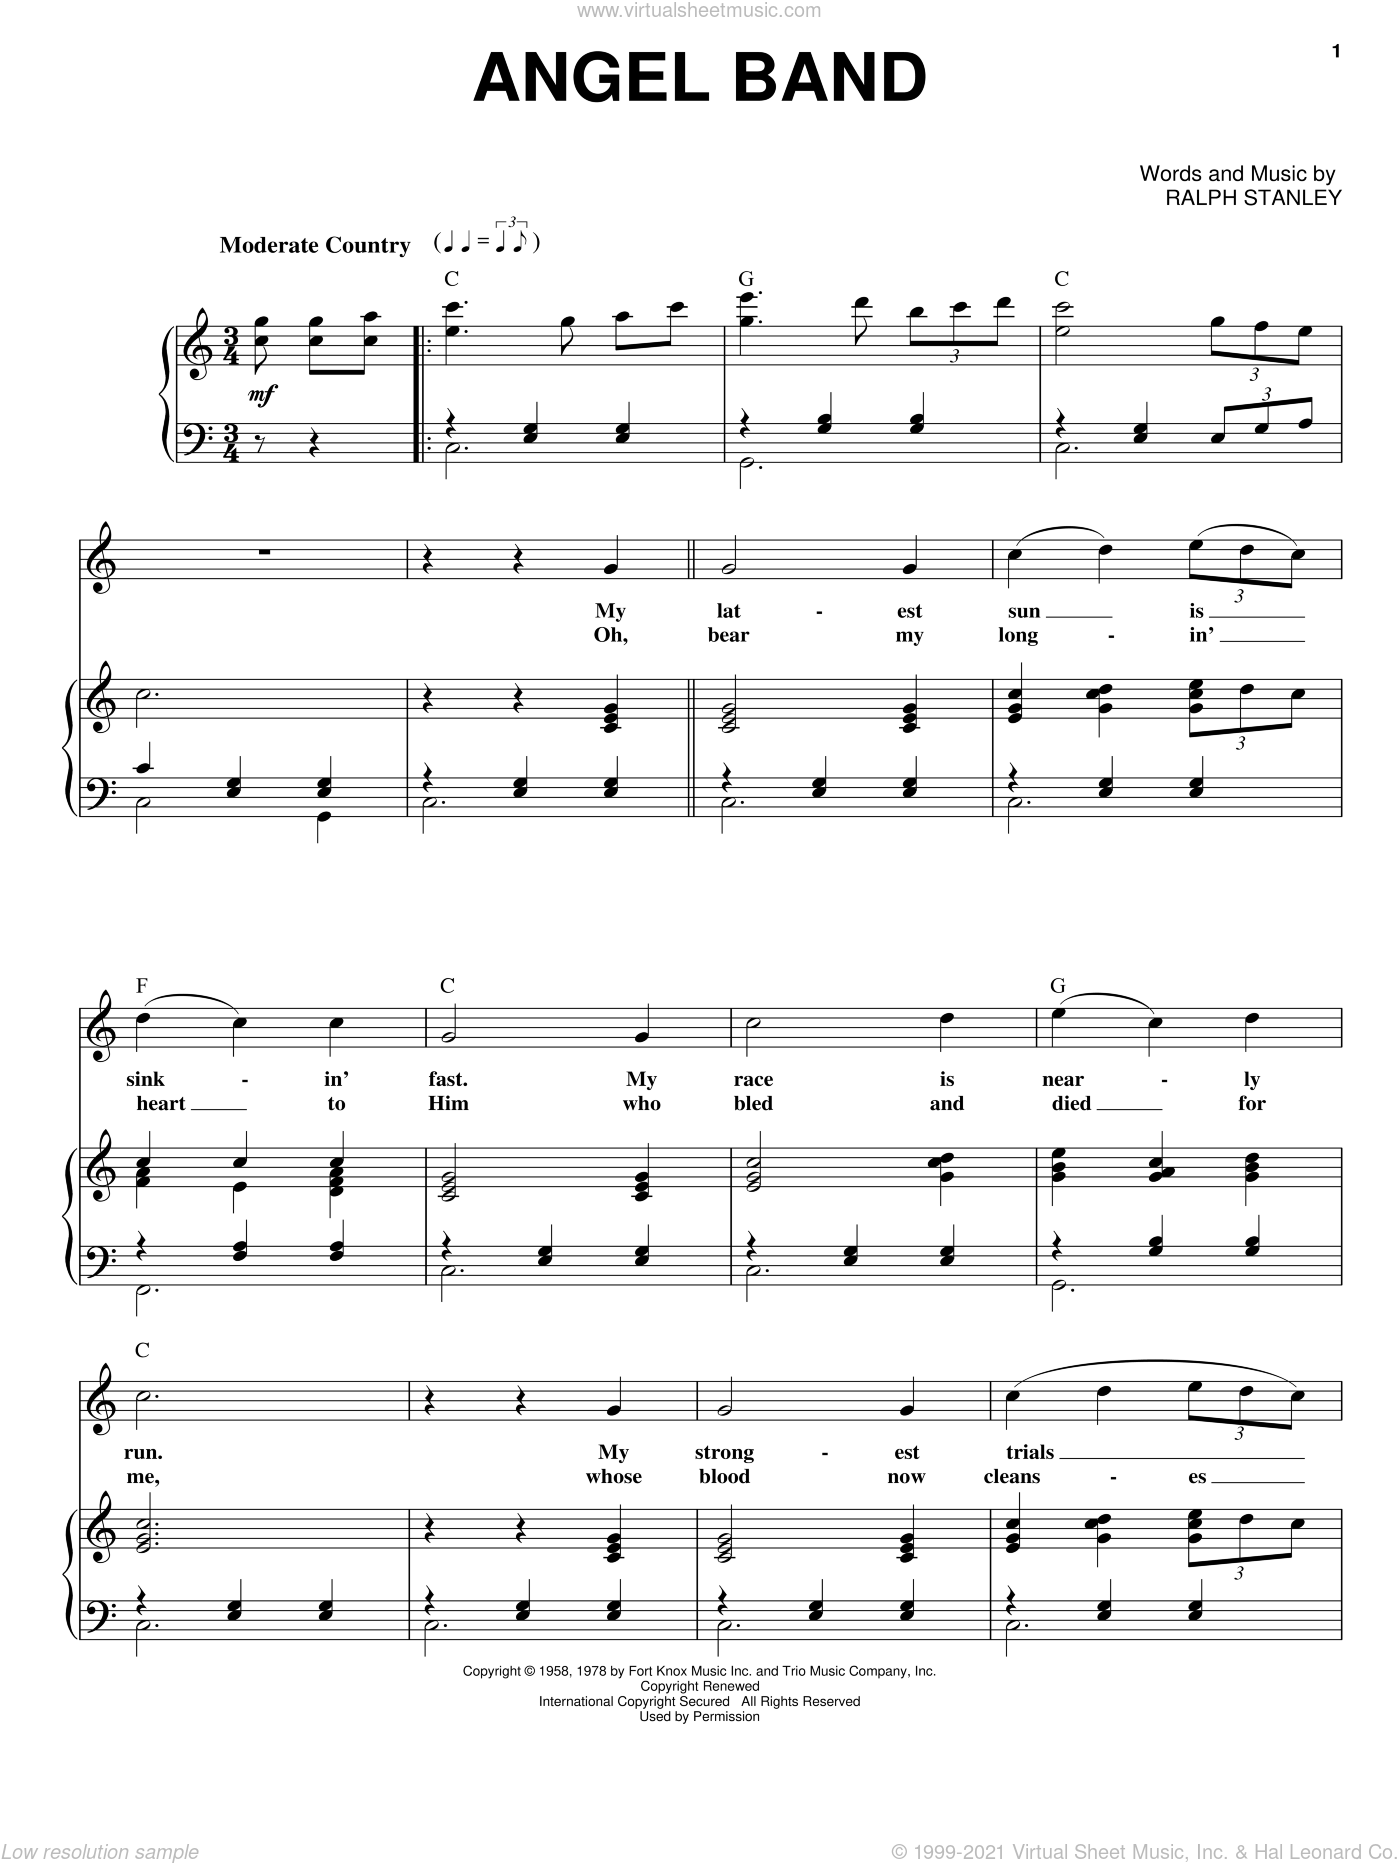 Angel Band sheet music for voice and piano by Ralph Stanley and The Stanley Brothers